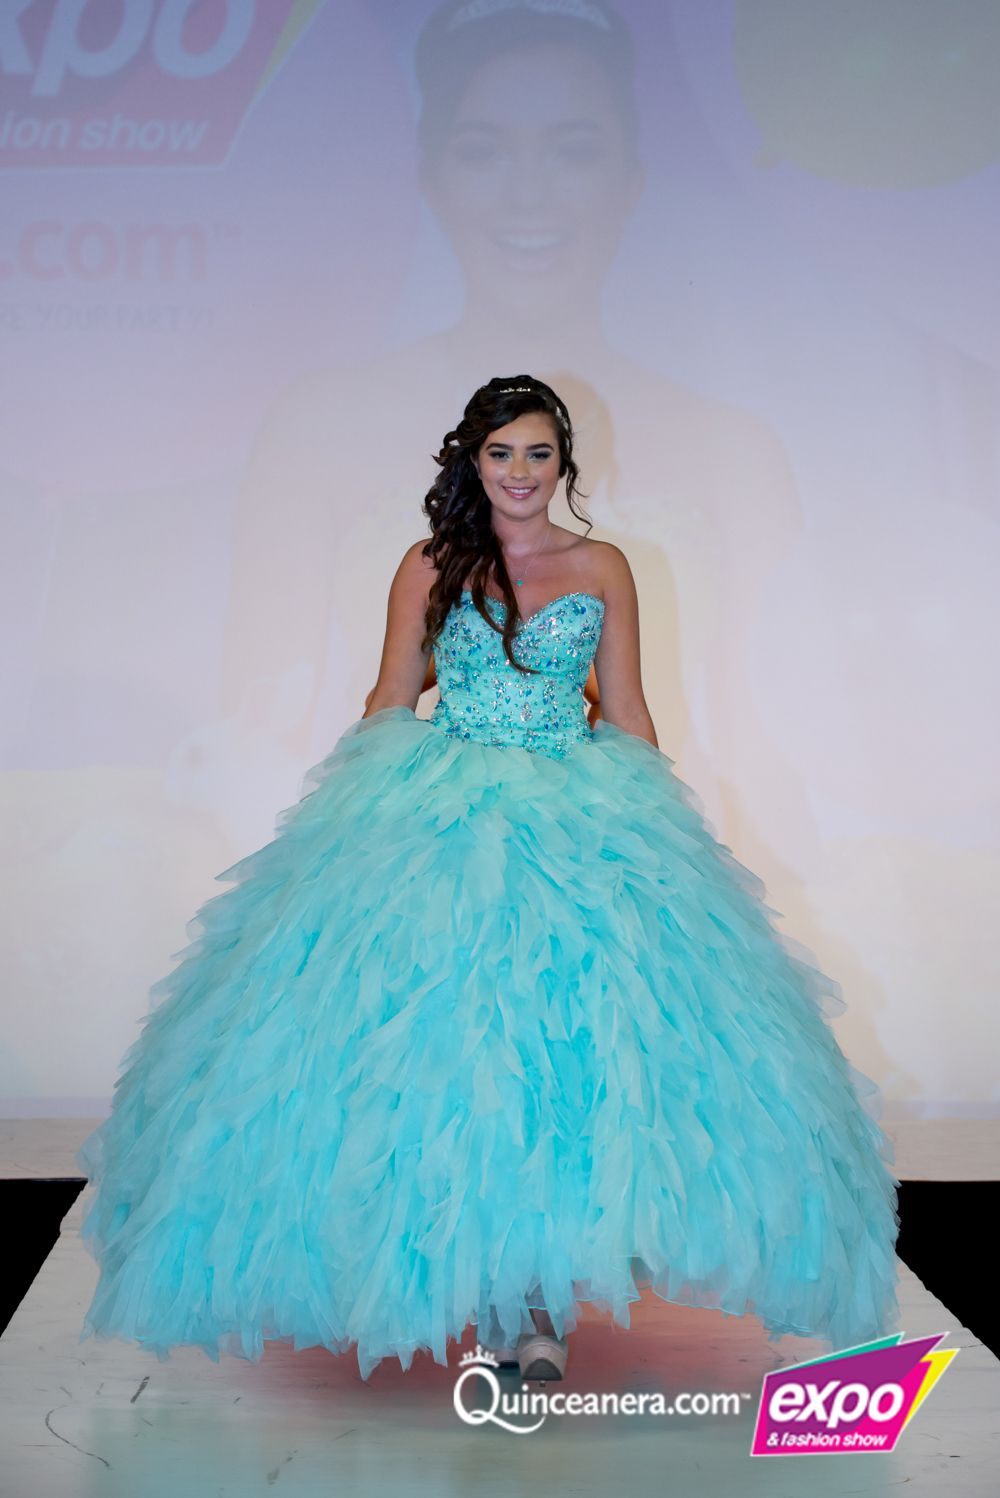 What to Wear Under Your Quinceanera Dress | Quinceanera ideas ...